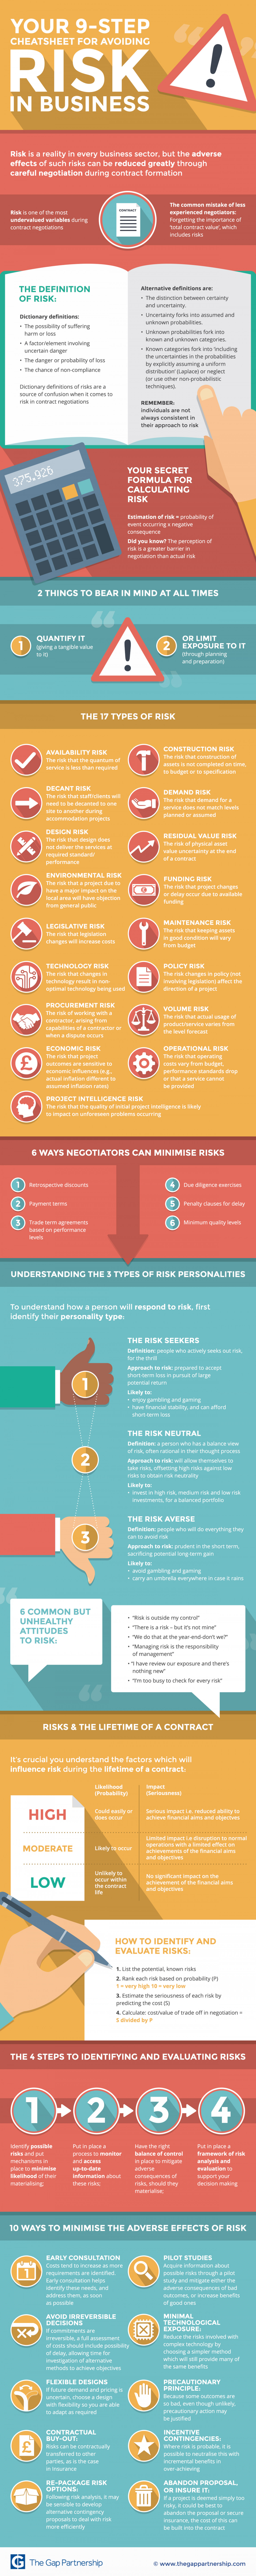 Your 9-Step Cheatsheet for Negotiating Risk in Business Infographic